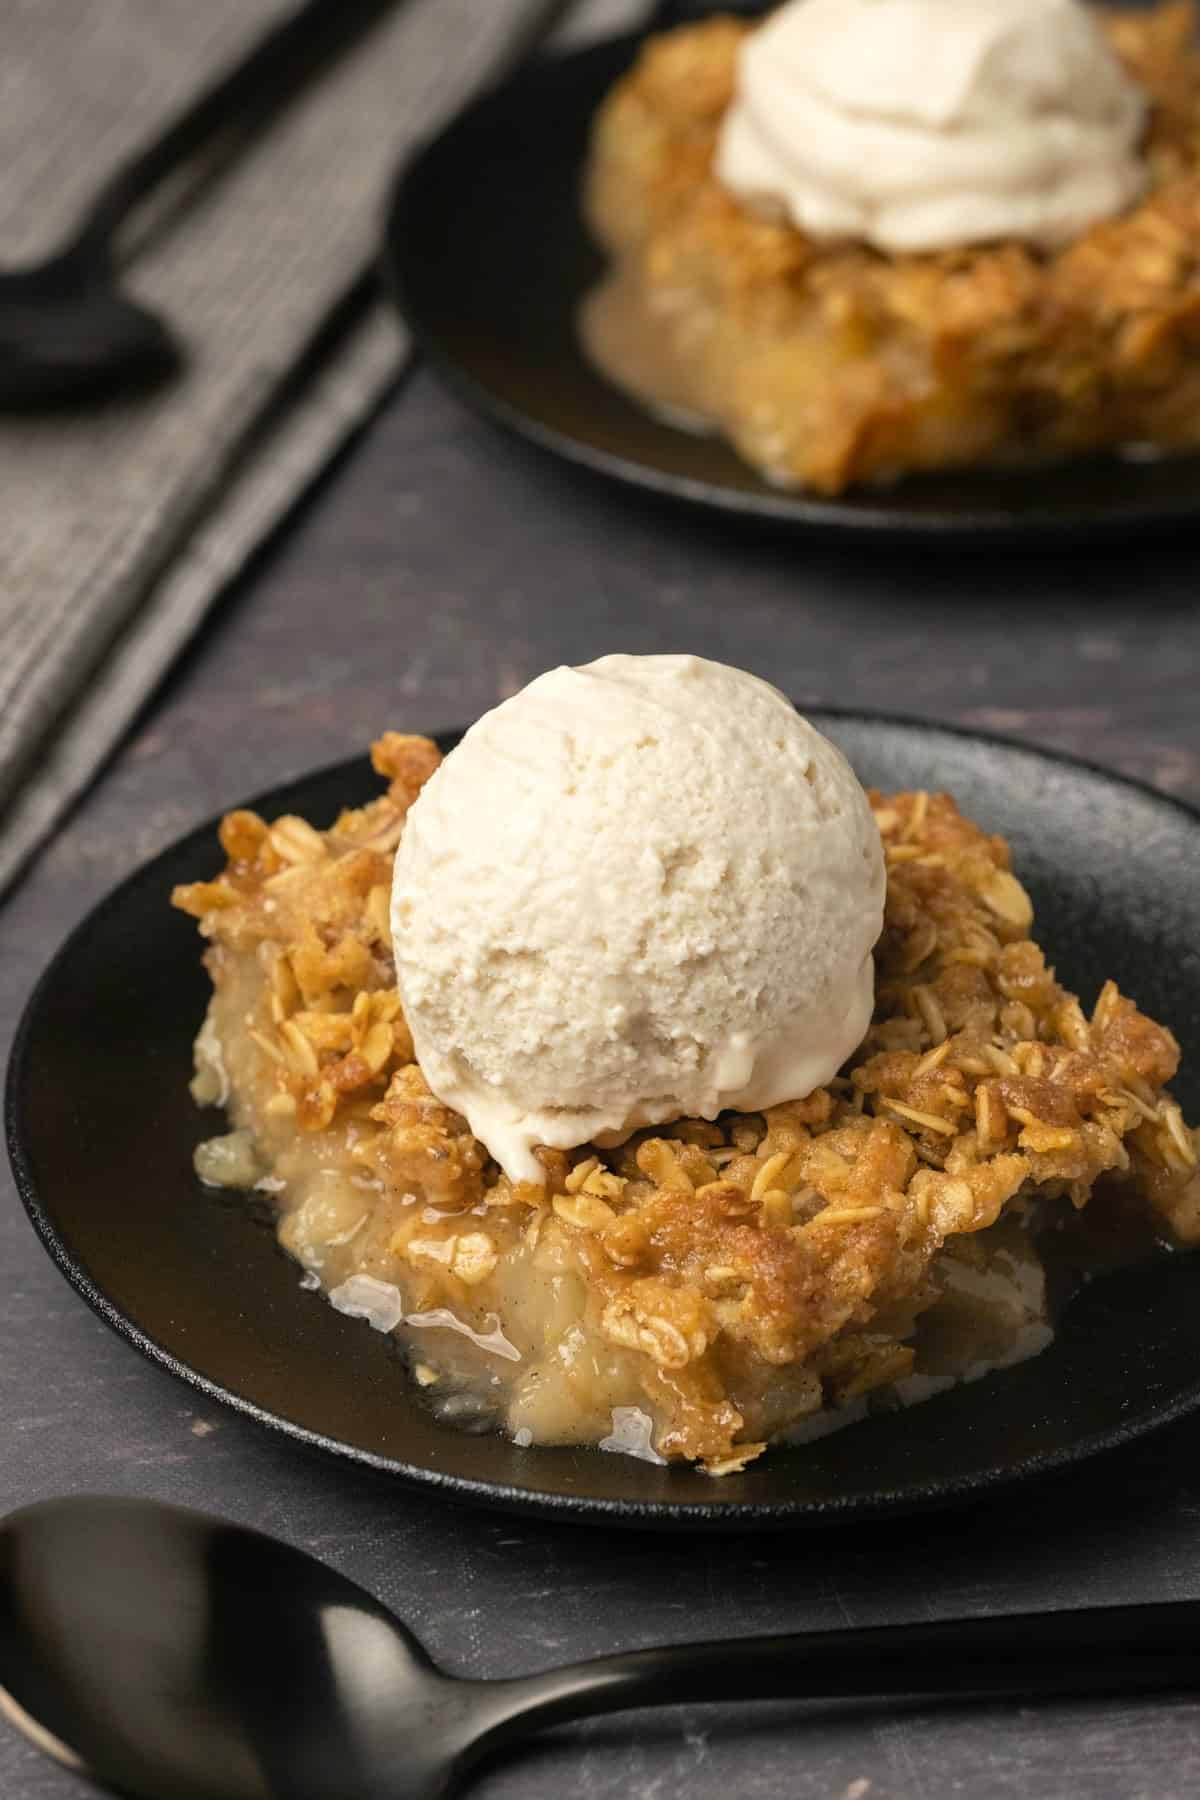 Slice of apple crisp topped with vanilla ice cream on a black plate.